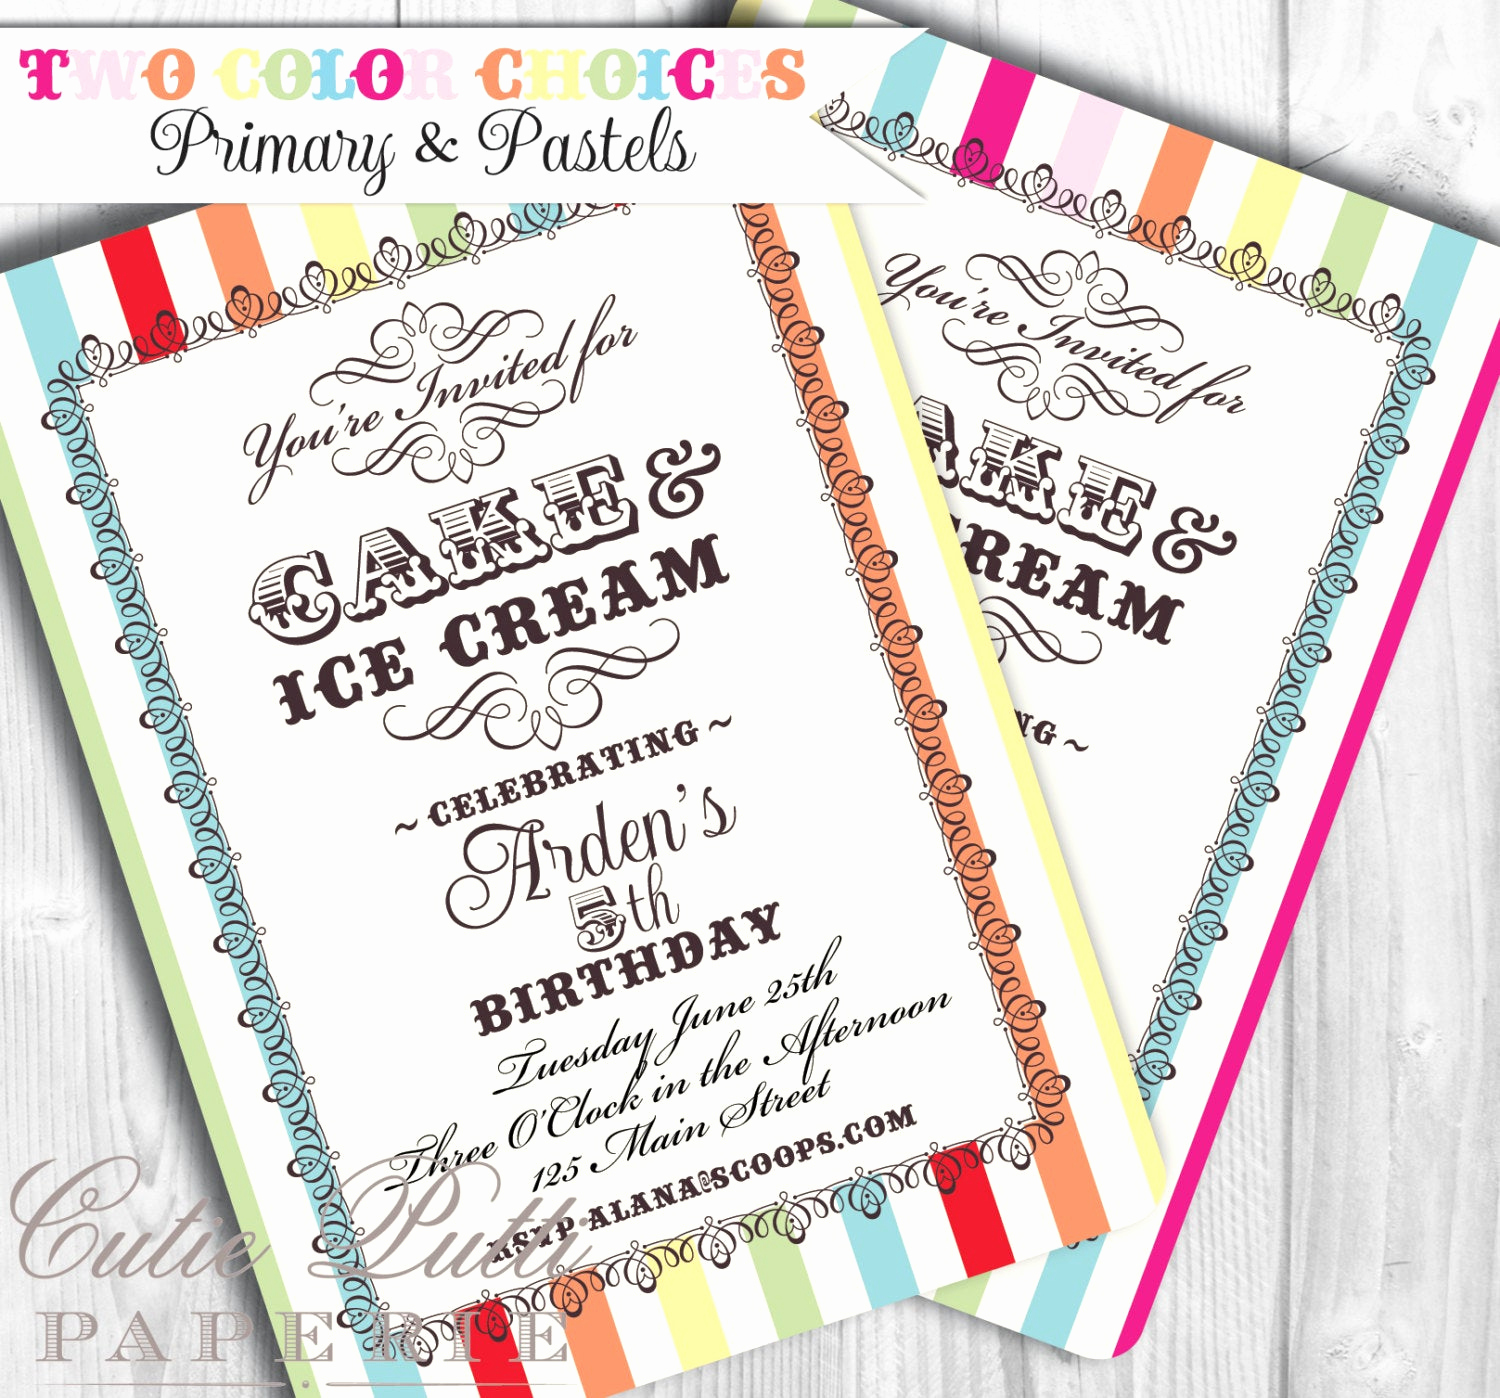 Ice Cream Party Invitation Lovely Ice Cream Party Invitations Printable Custom Invitations by